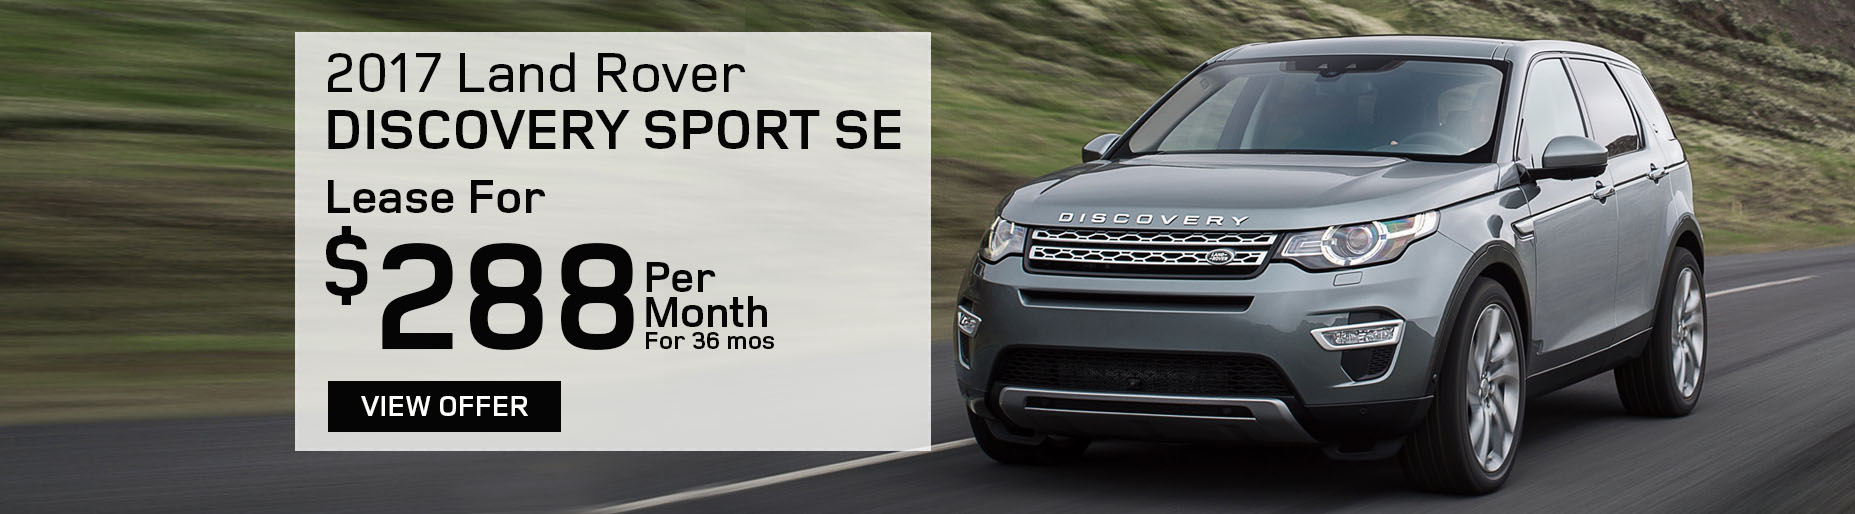 sport specials discoverysport kansas special landrover in city ks rover land lease discovery